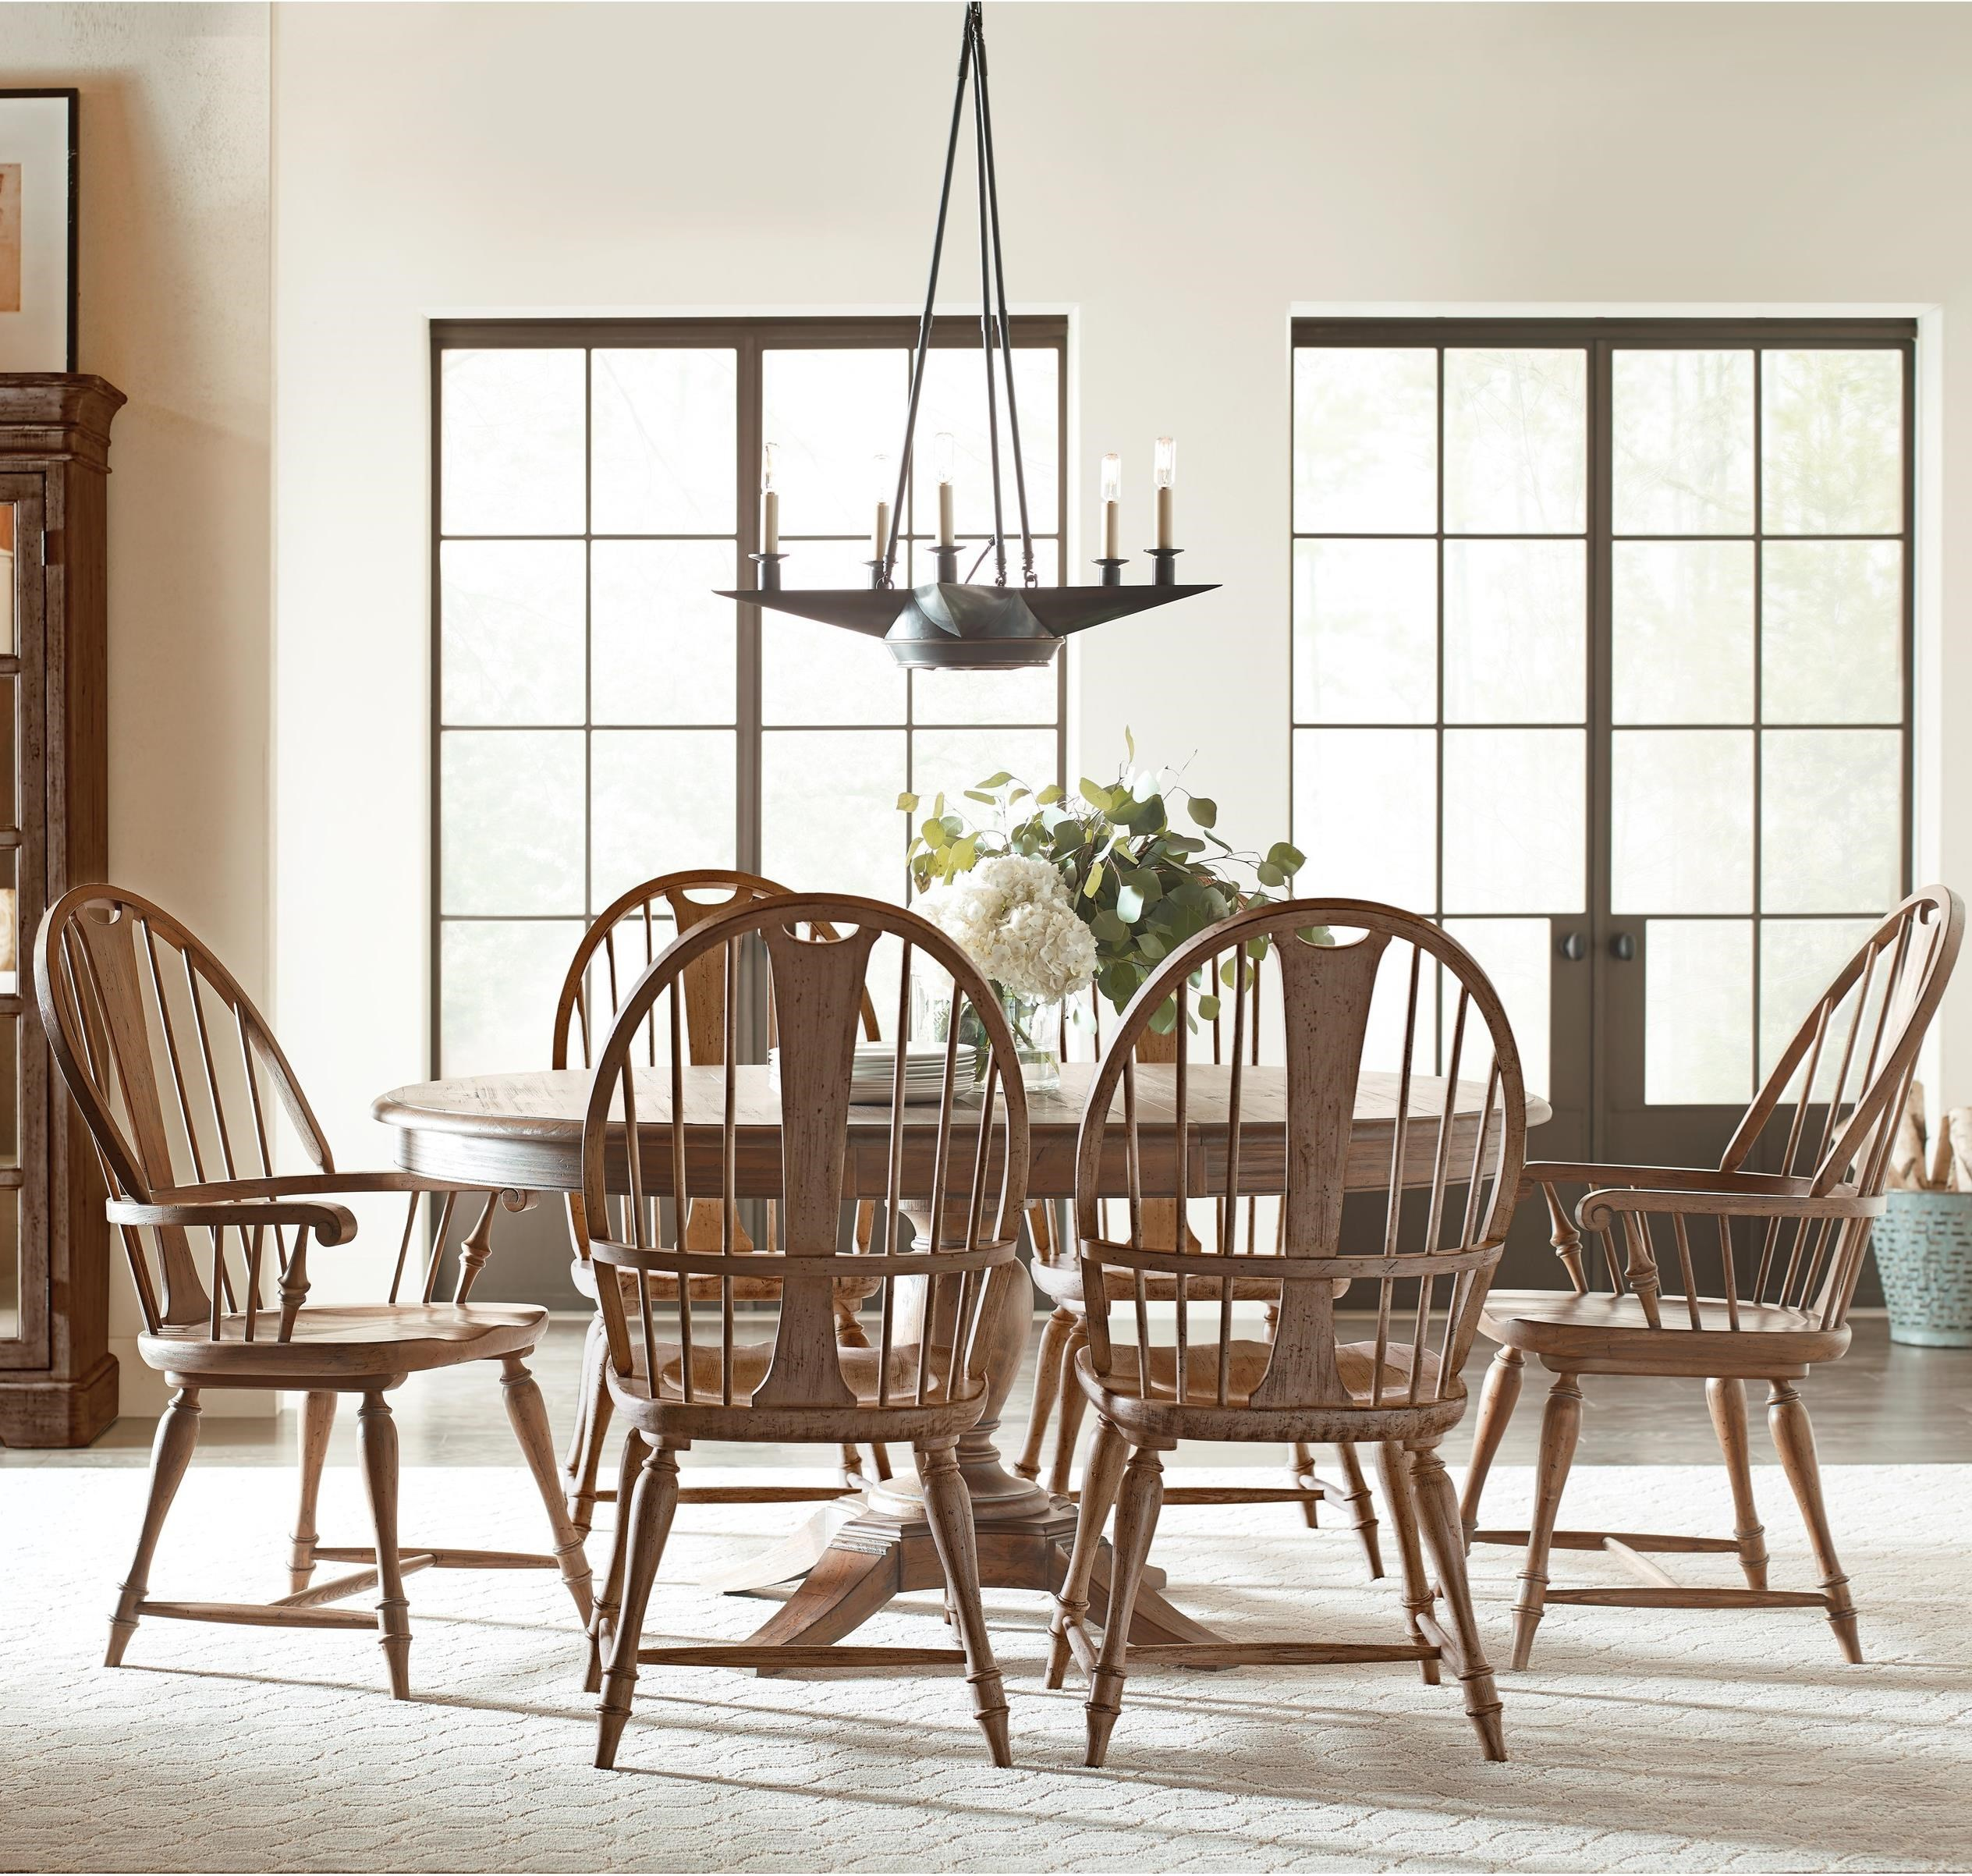 Weatherford 7-Piece Dining Set by Kincaid Furniture at Northeast Factory Direct